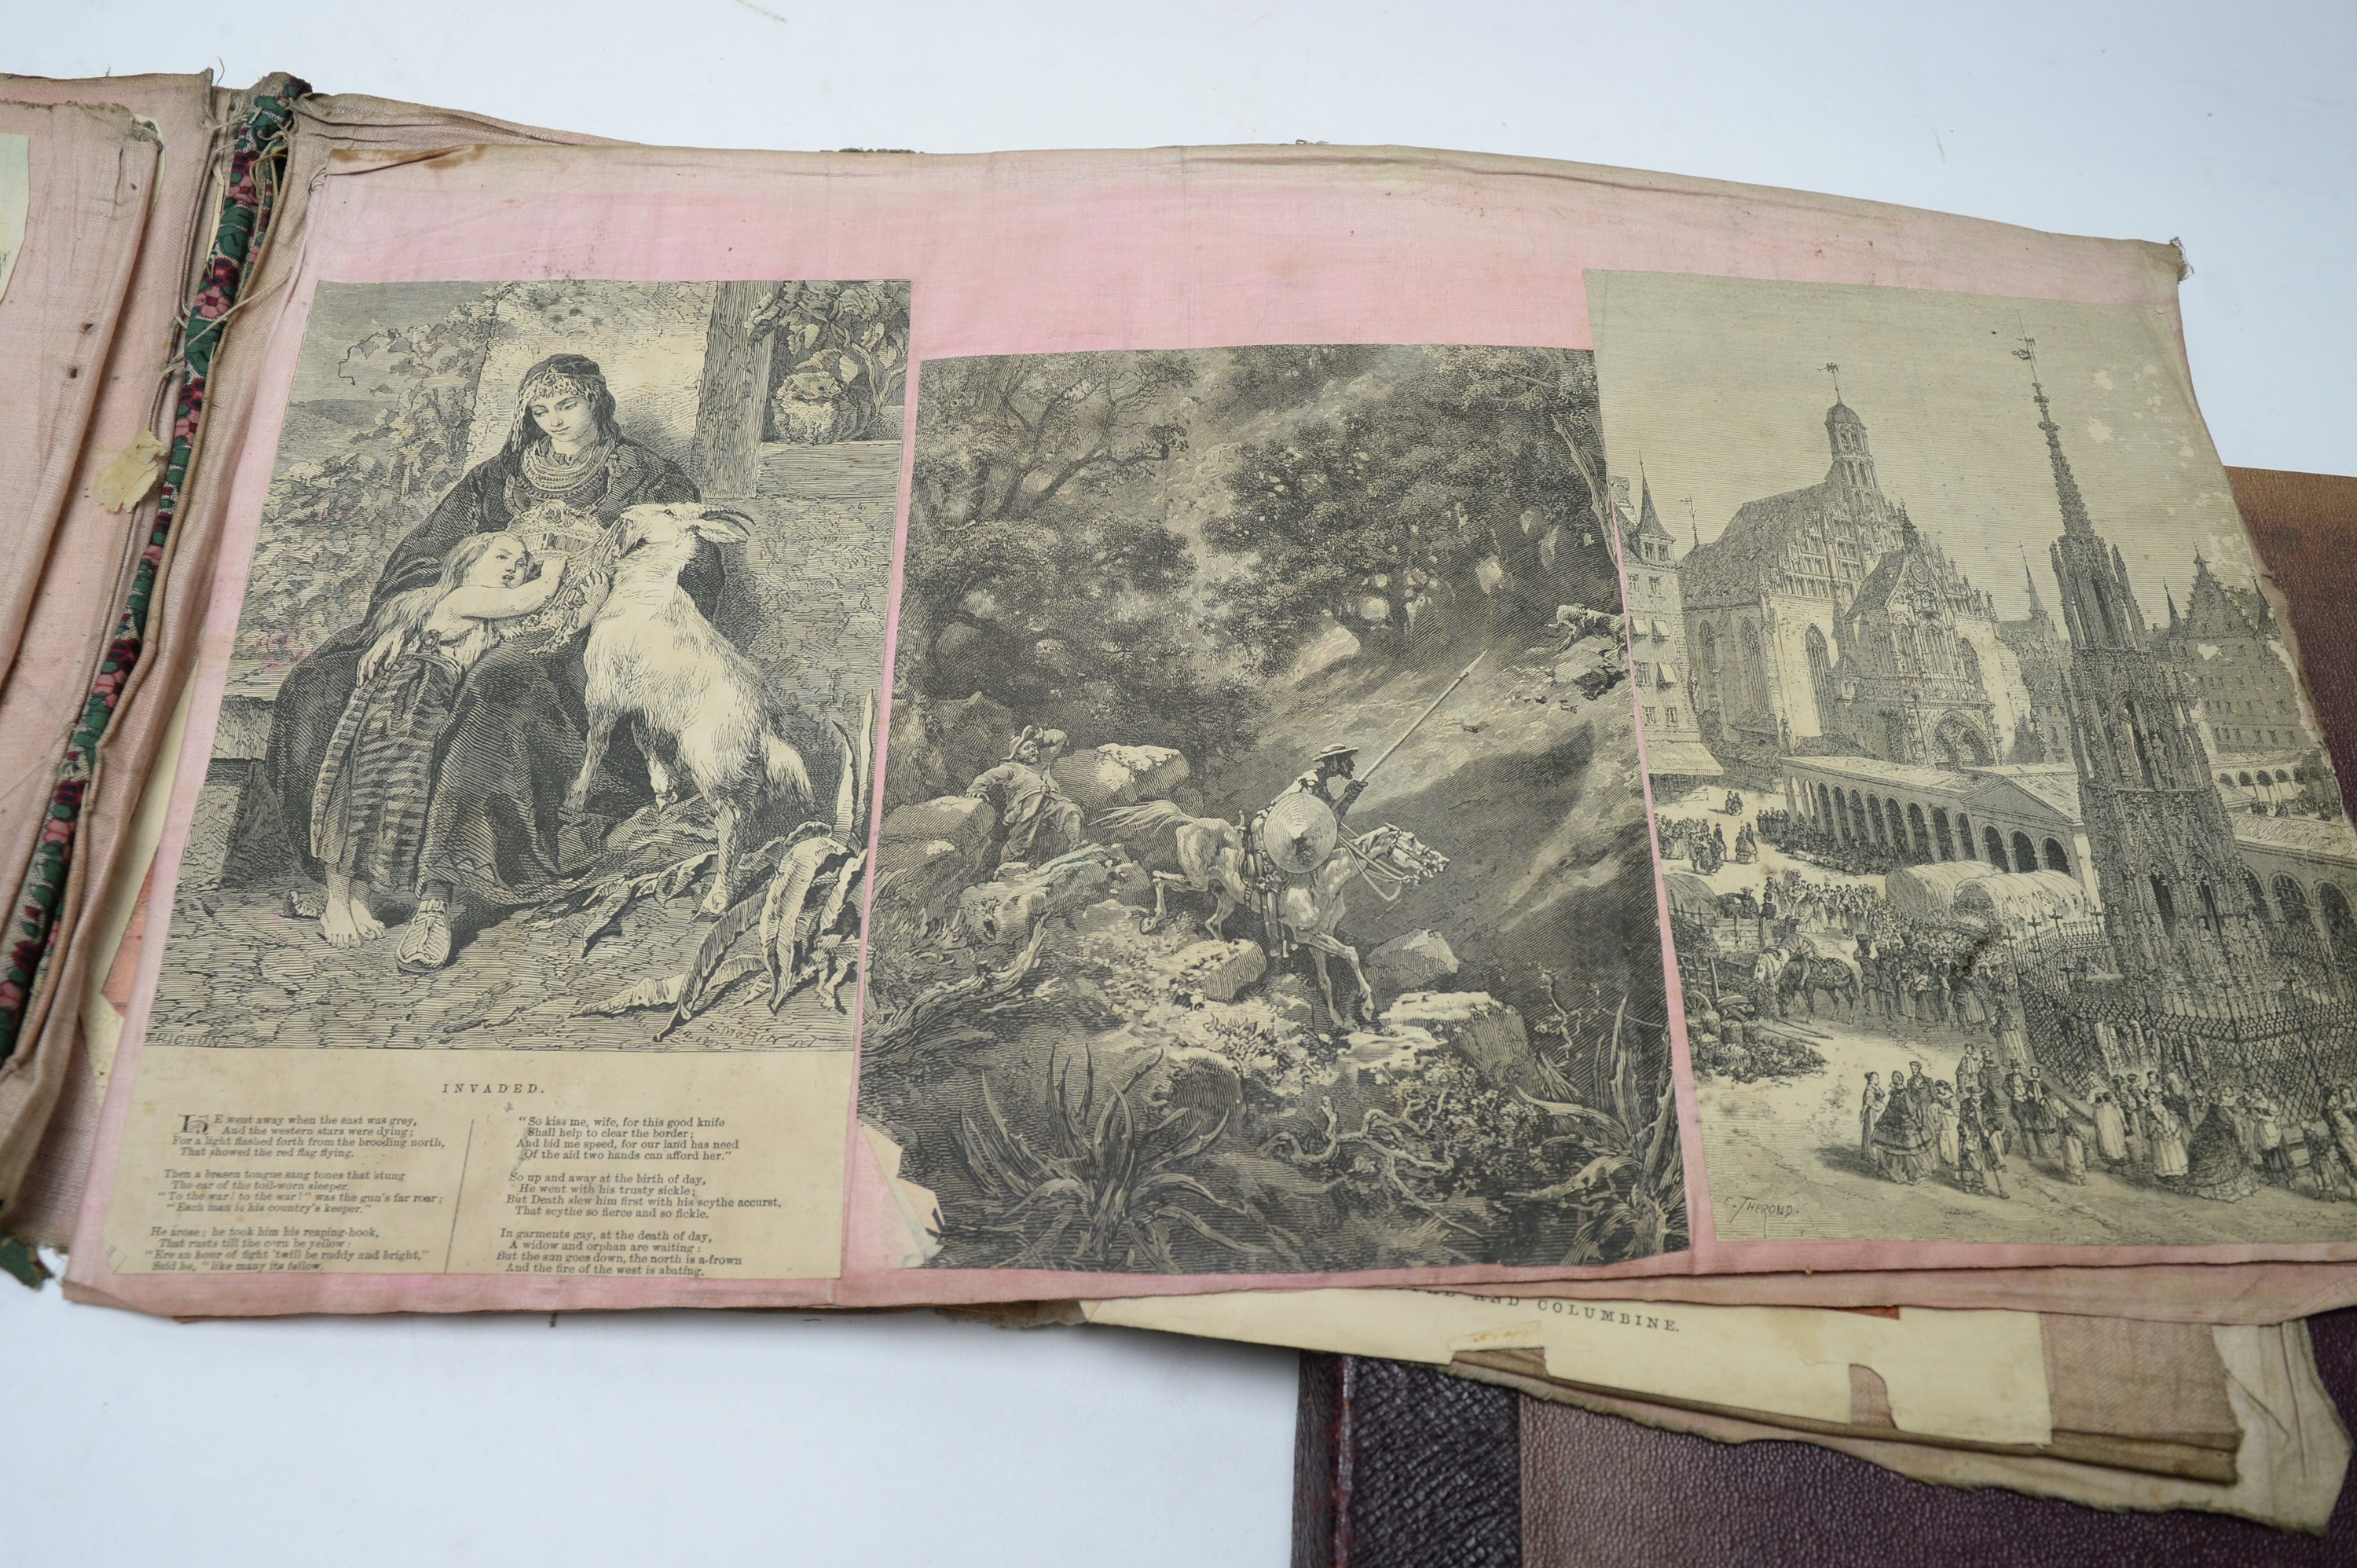 Nister (Ernest) and other Authors; and miscellaneous items. - Image 6 of 6